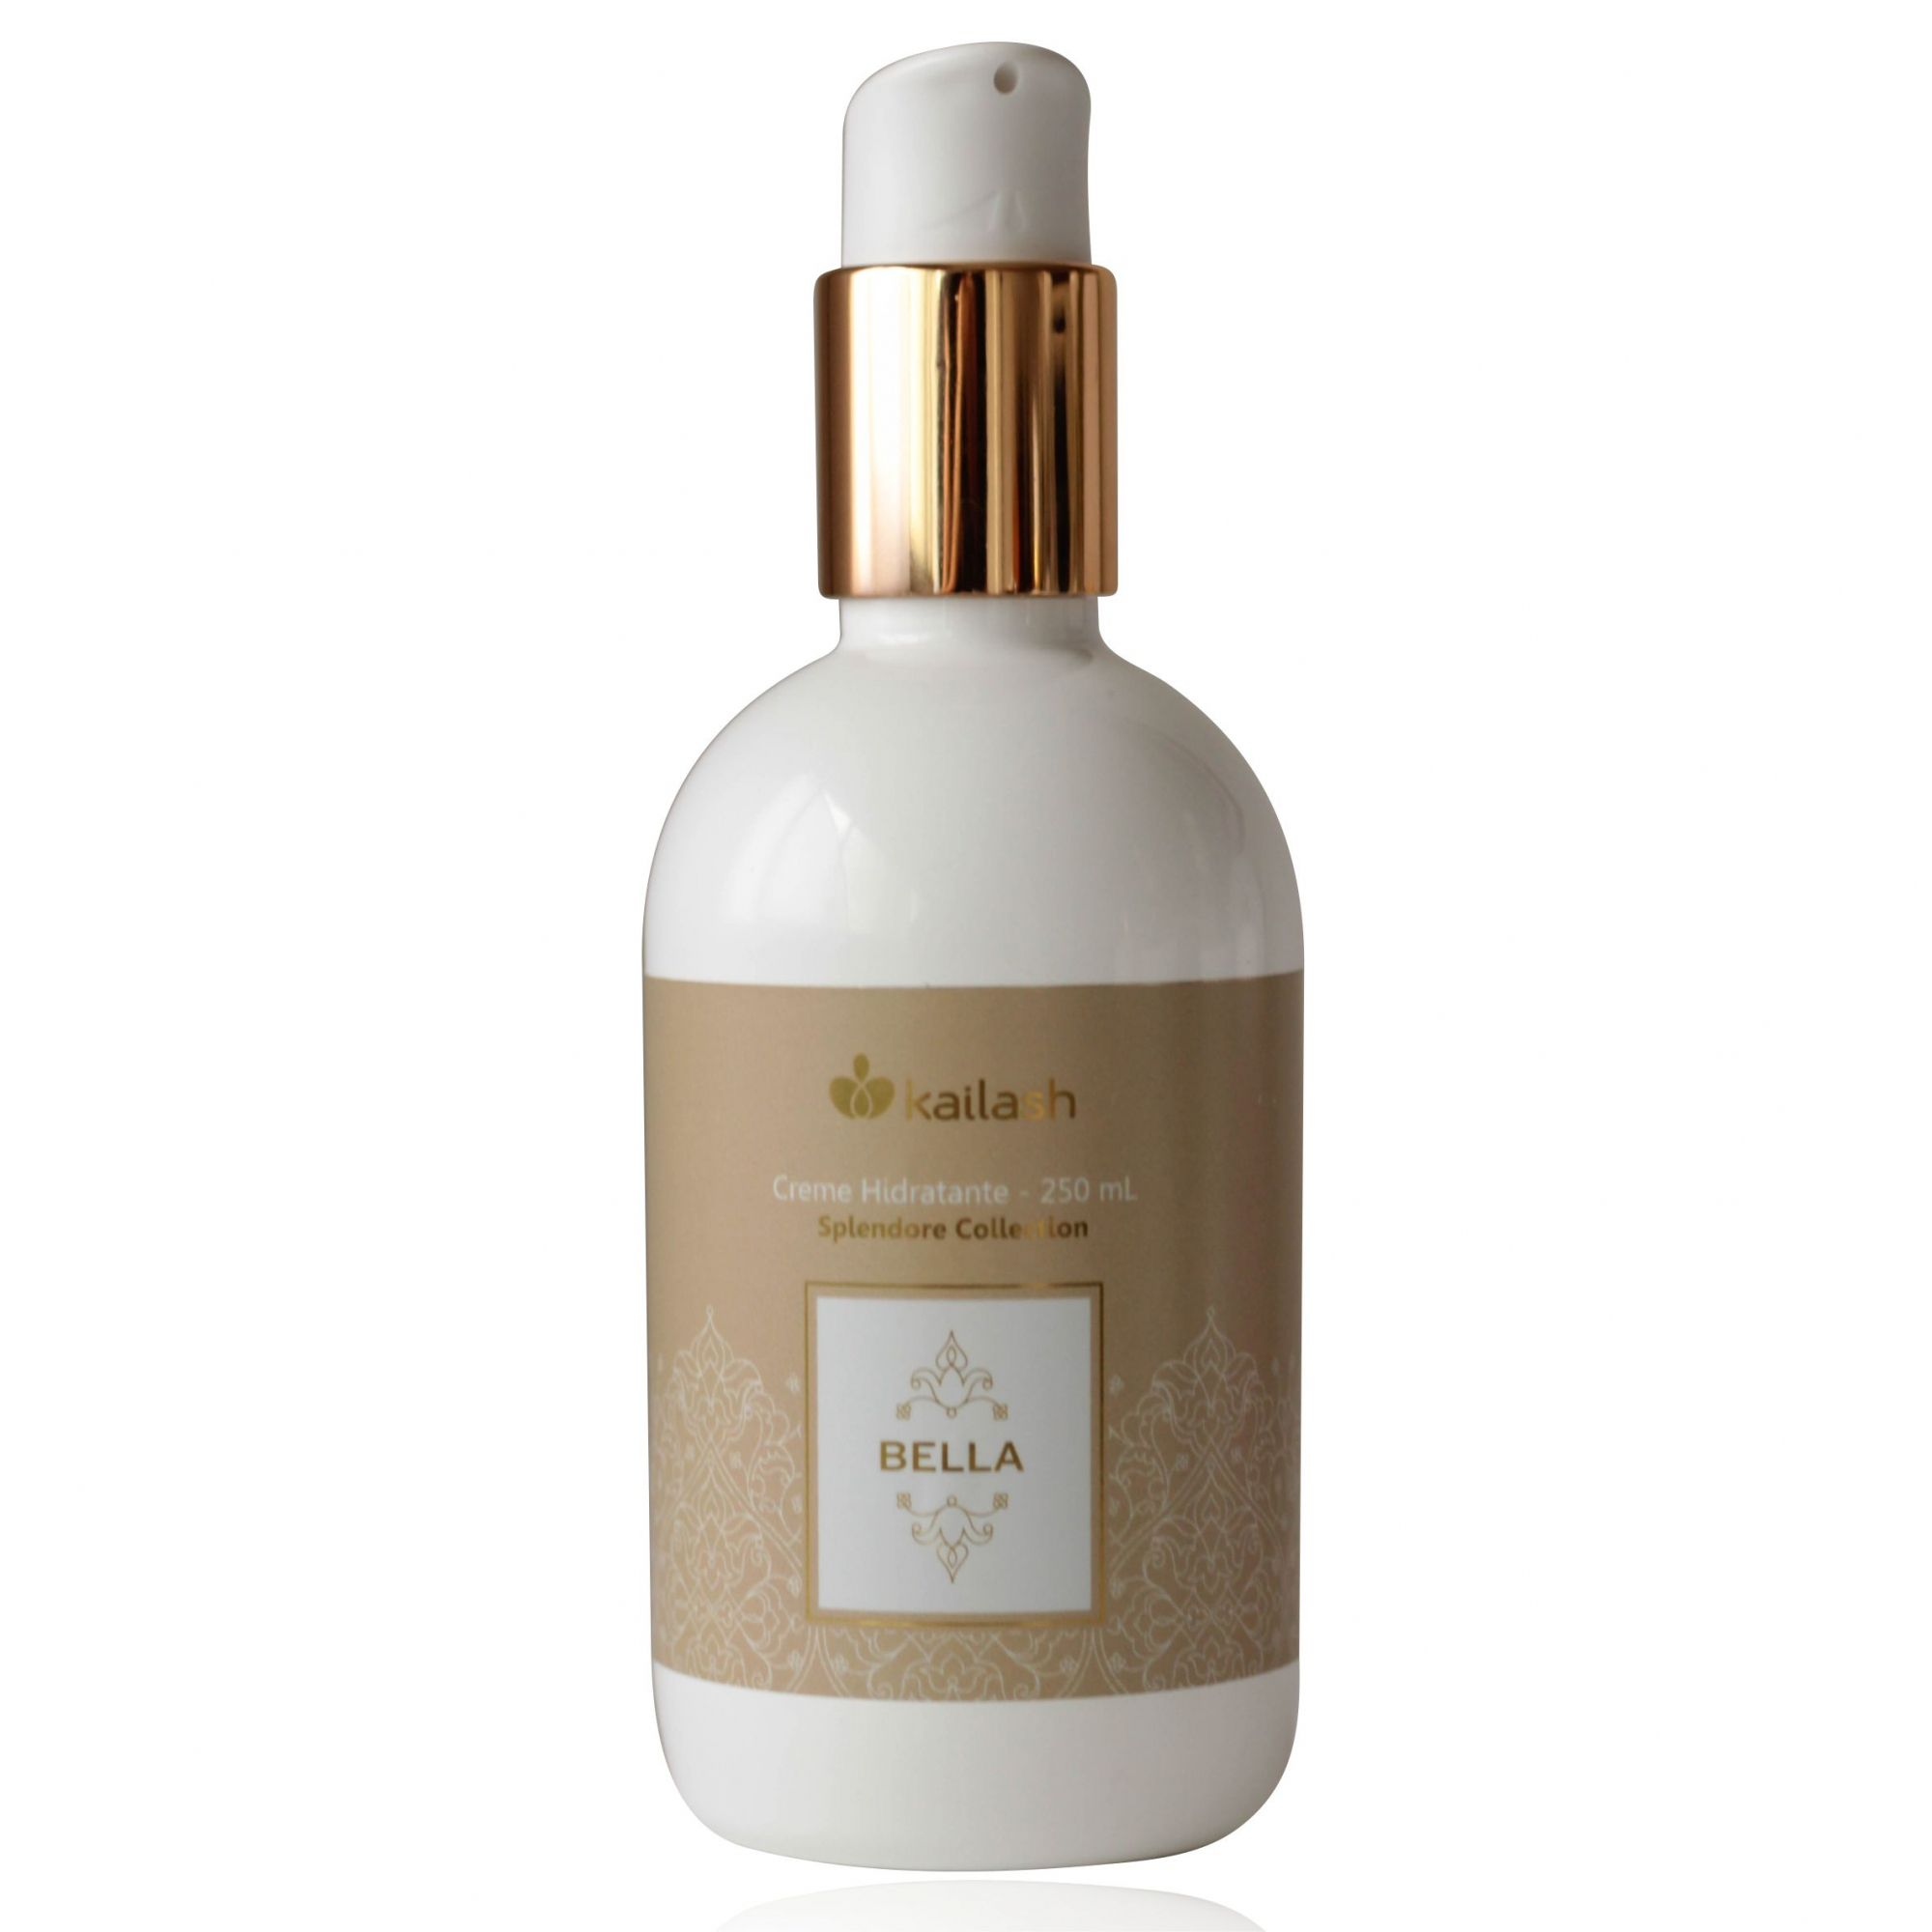 Creme Hidratante 250mL Bella